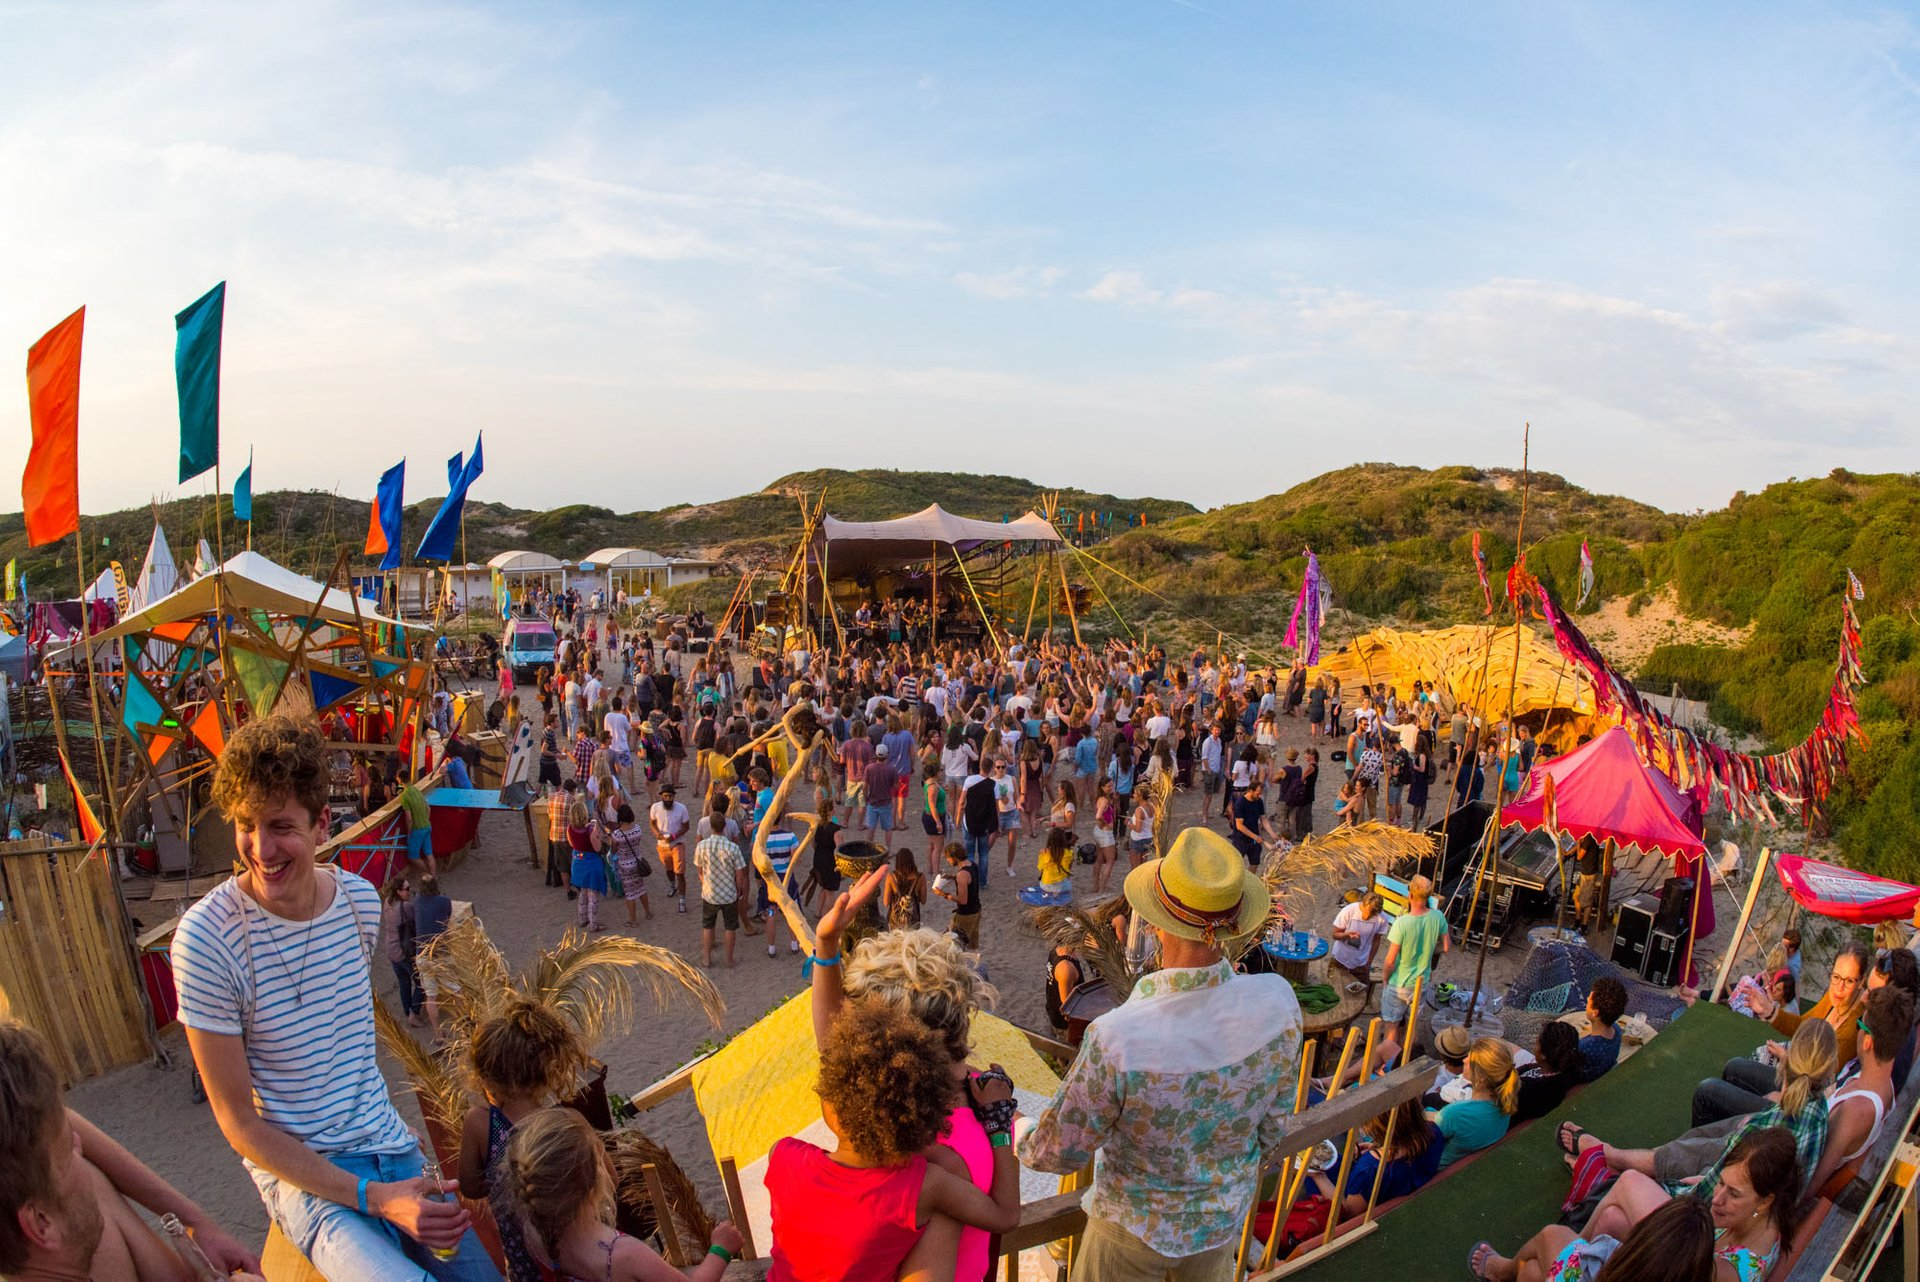 Best time to see Surfana Festival 2020